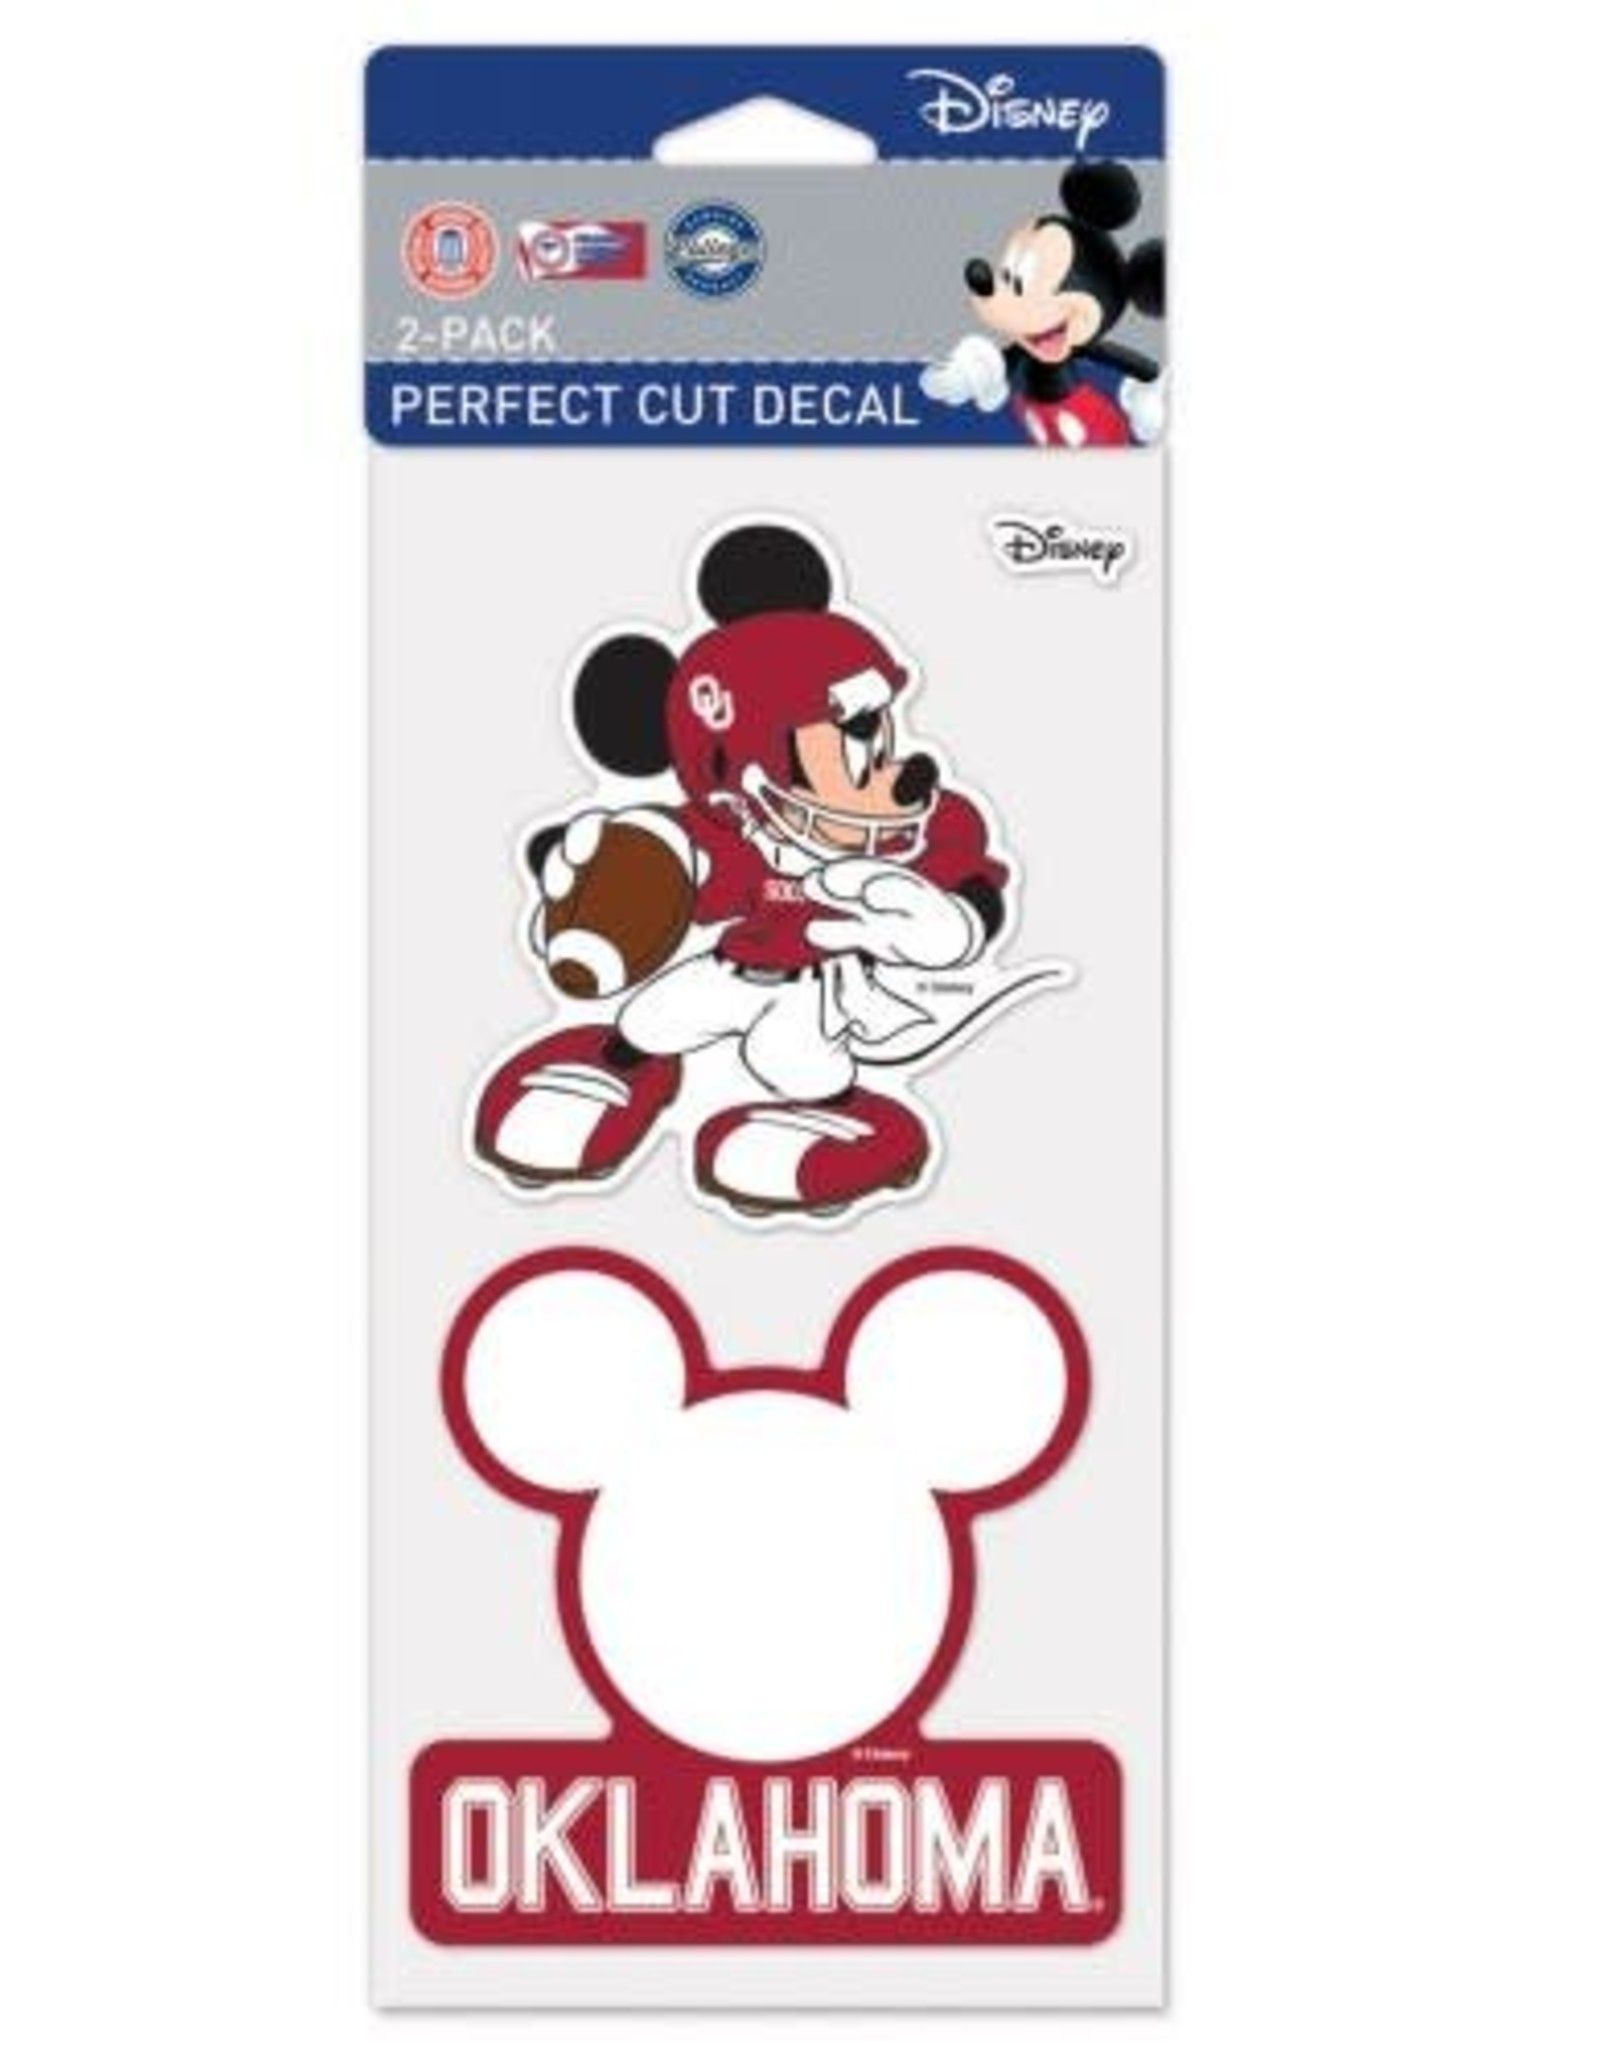 WinCraft Disney Oklahoma Decal 2-pack